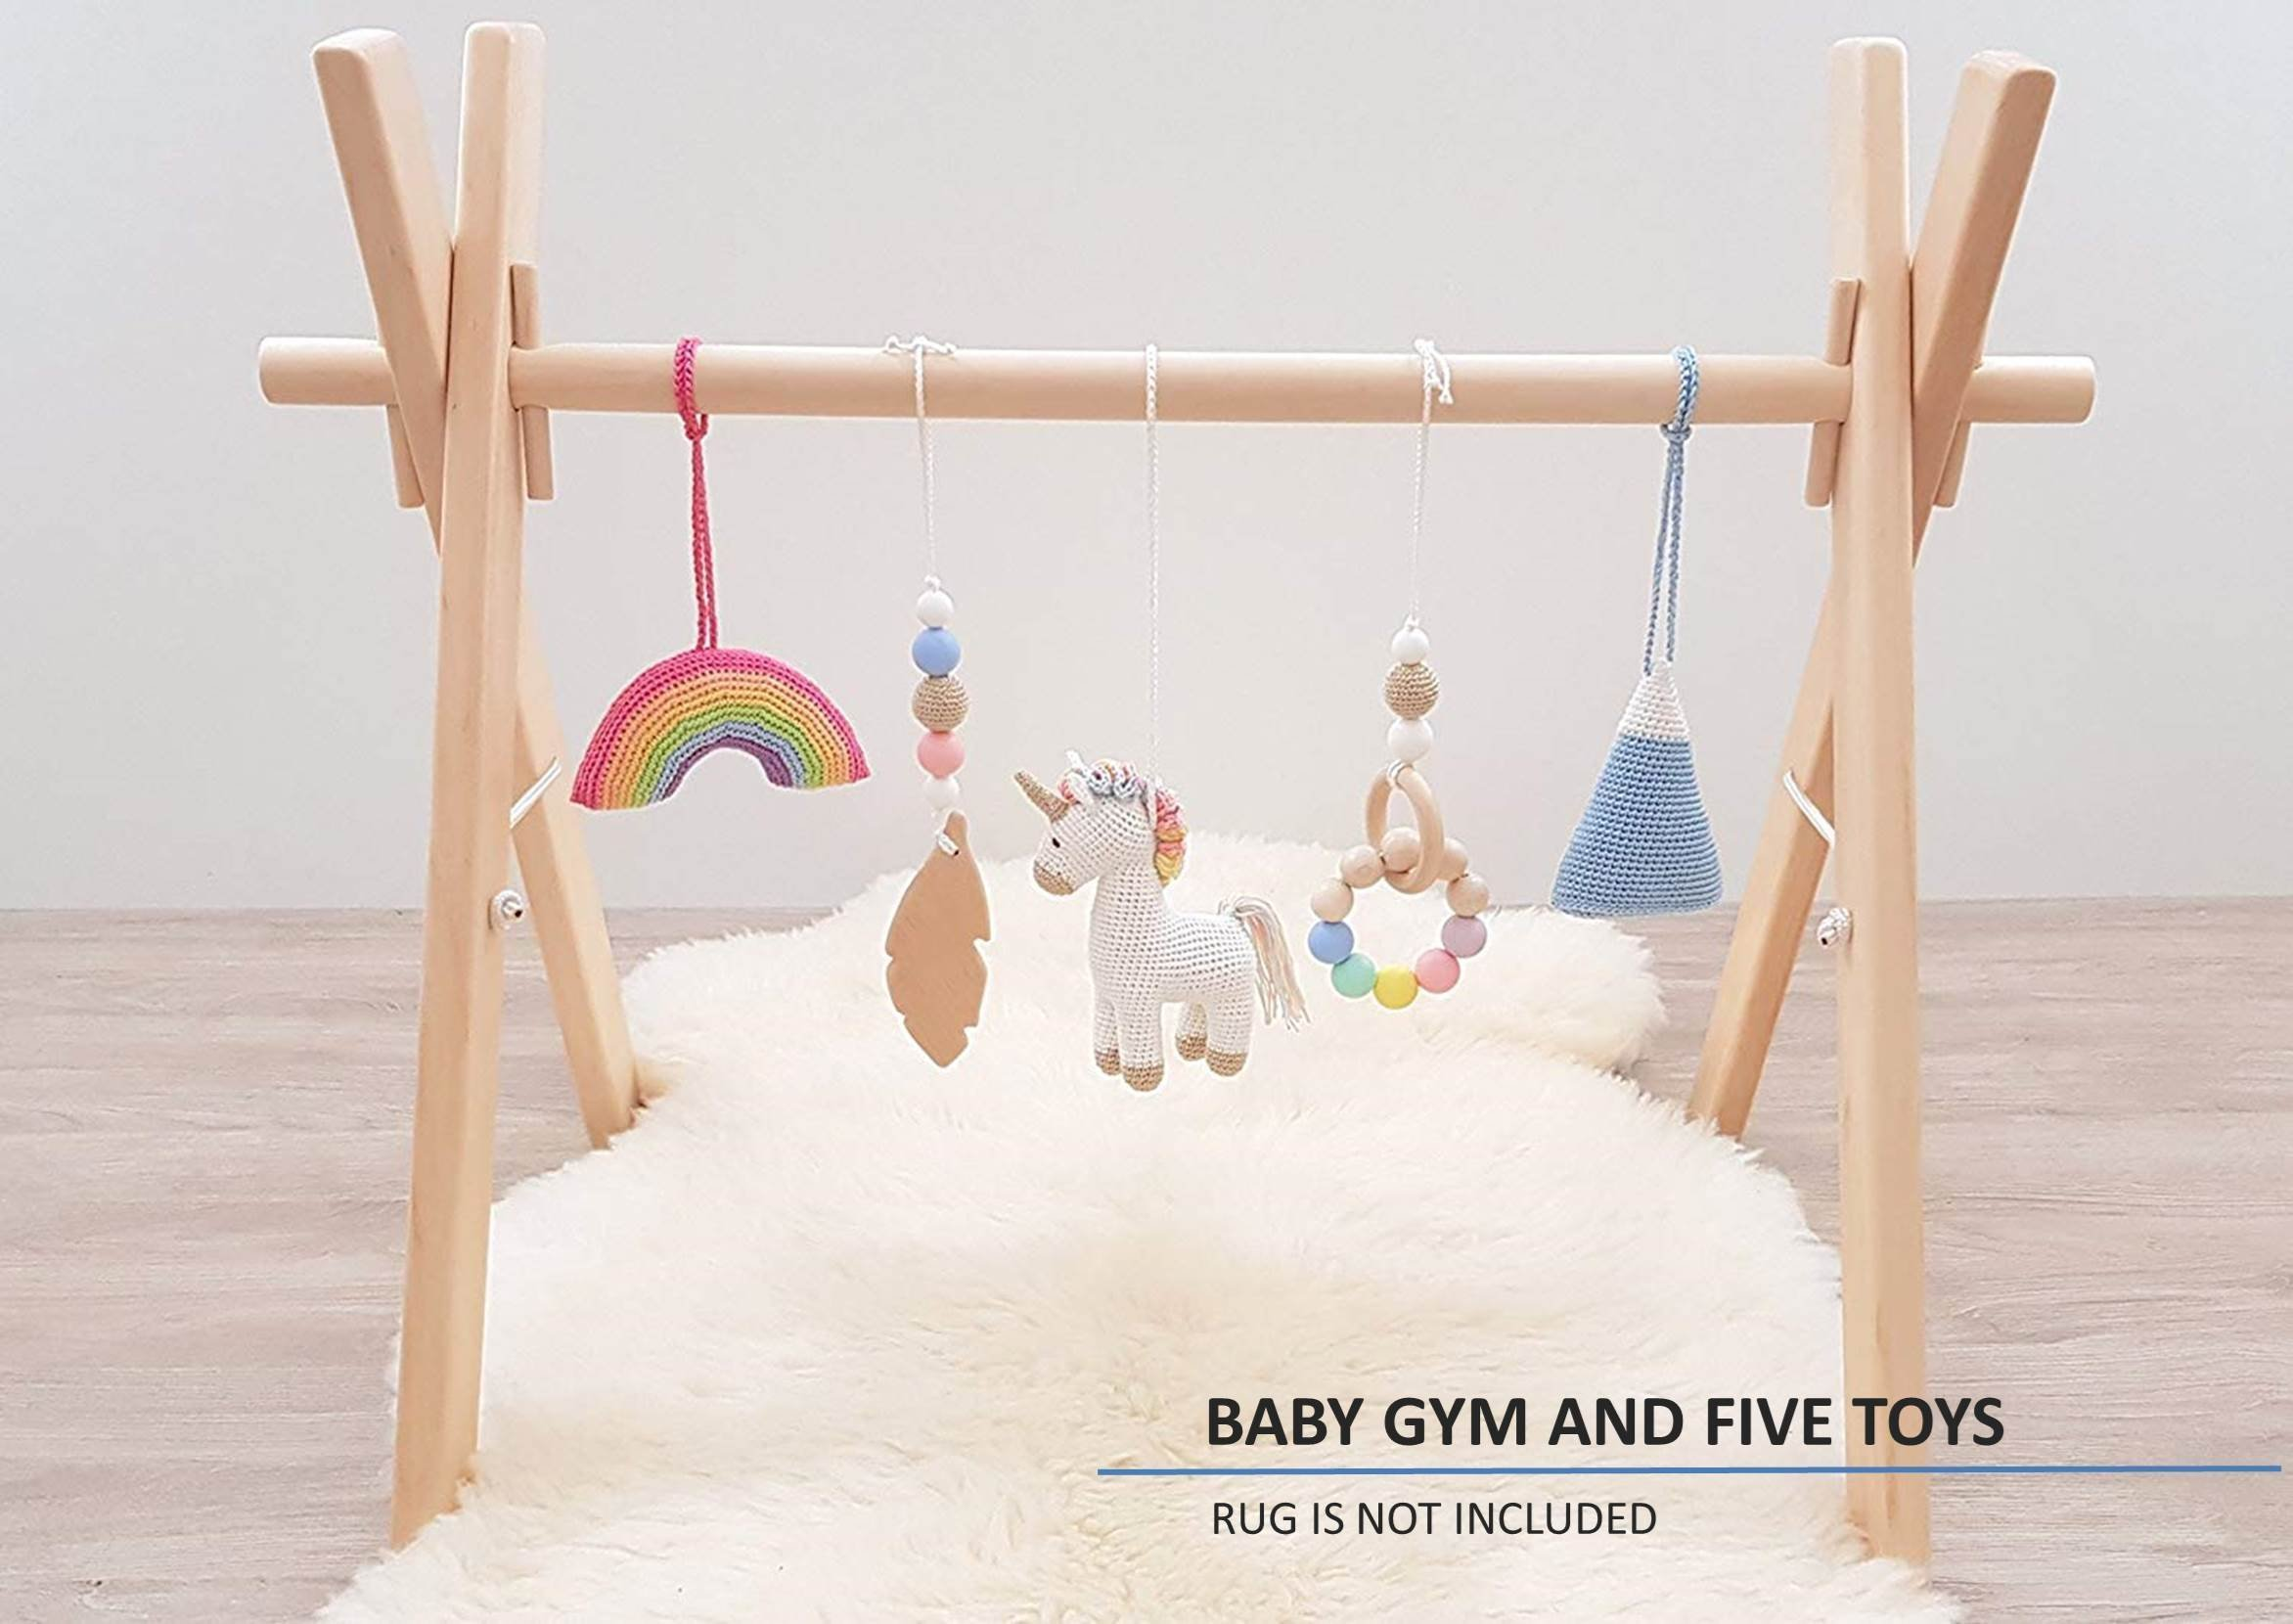 Rainbow Unicorn Baby play gym with 5 mobiles: Unicorn, Rainbow, Mountain, Feather, Beaded ring. Wooden baby gym. Crochet rattles. Infant activity center. Baby shower gift. Handmade